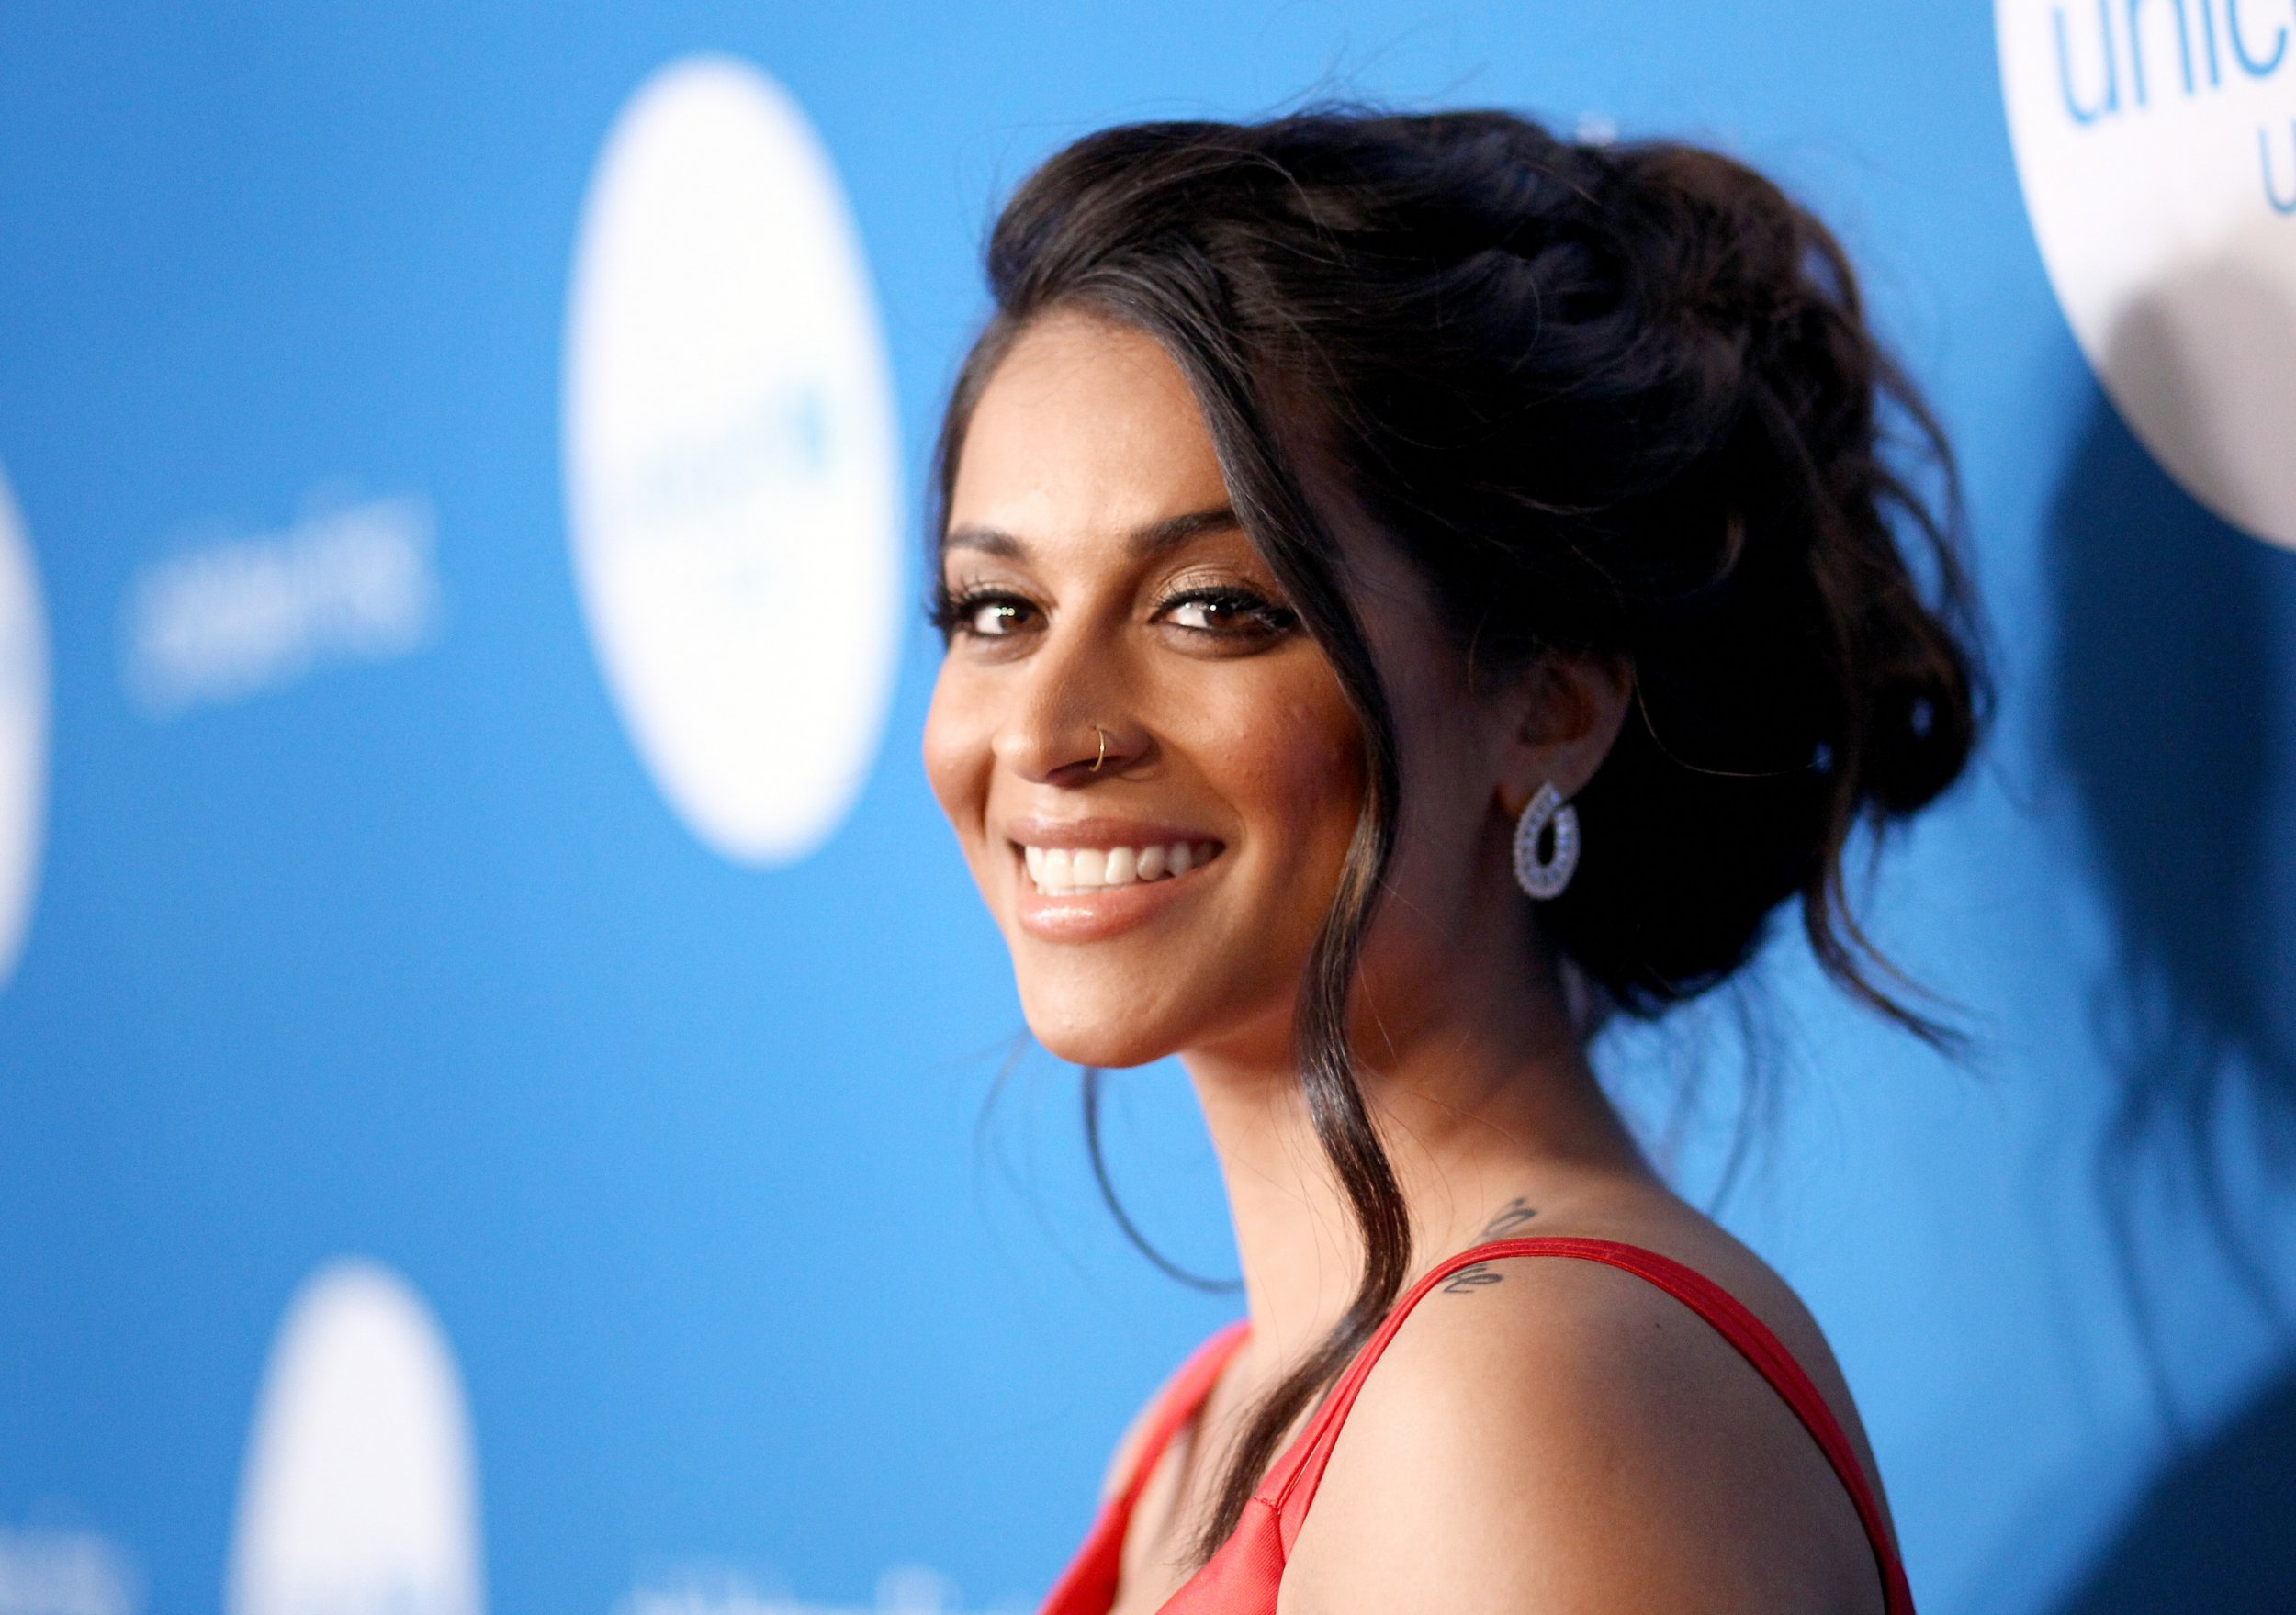 Lilly Singh 'Went Through So Much' To Release Her Bollywood Rap Songs, Just Weeks After Announcing NBC Late Night Show Gig